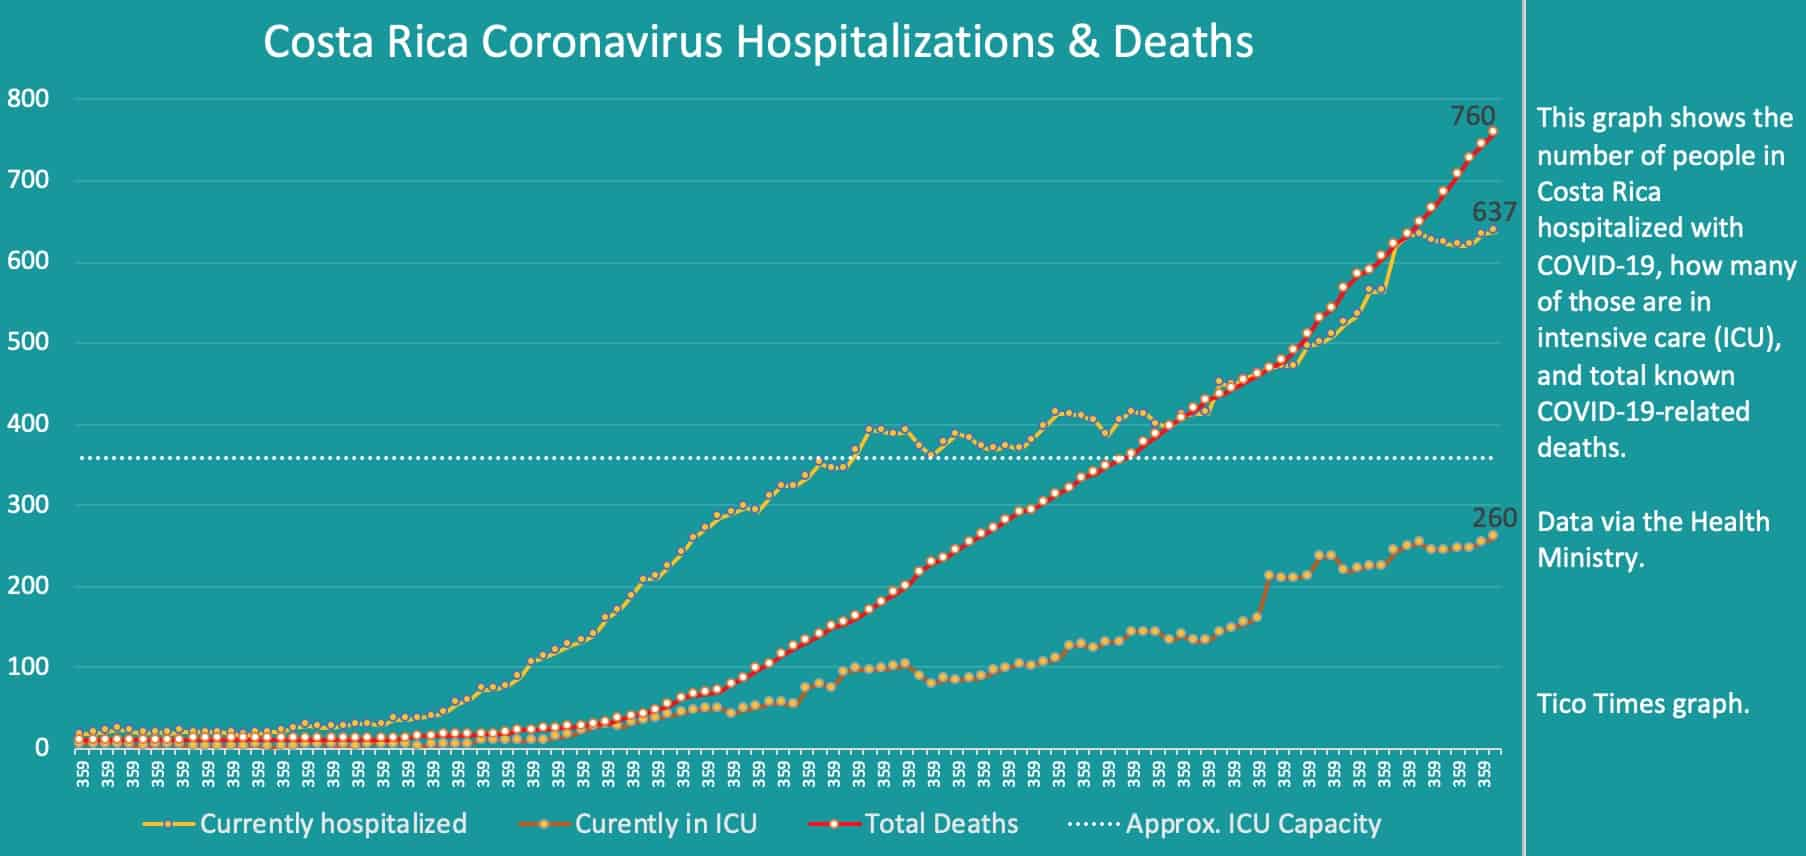 Costa Rica coronavirus hospitalizations and deaths on September 22, 2020